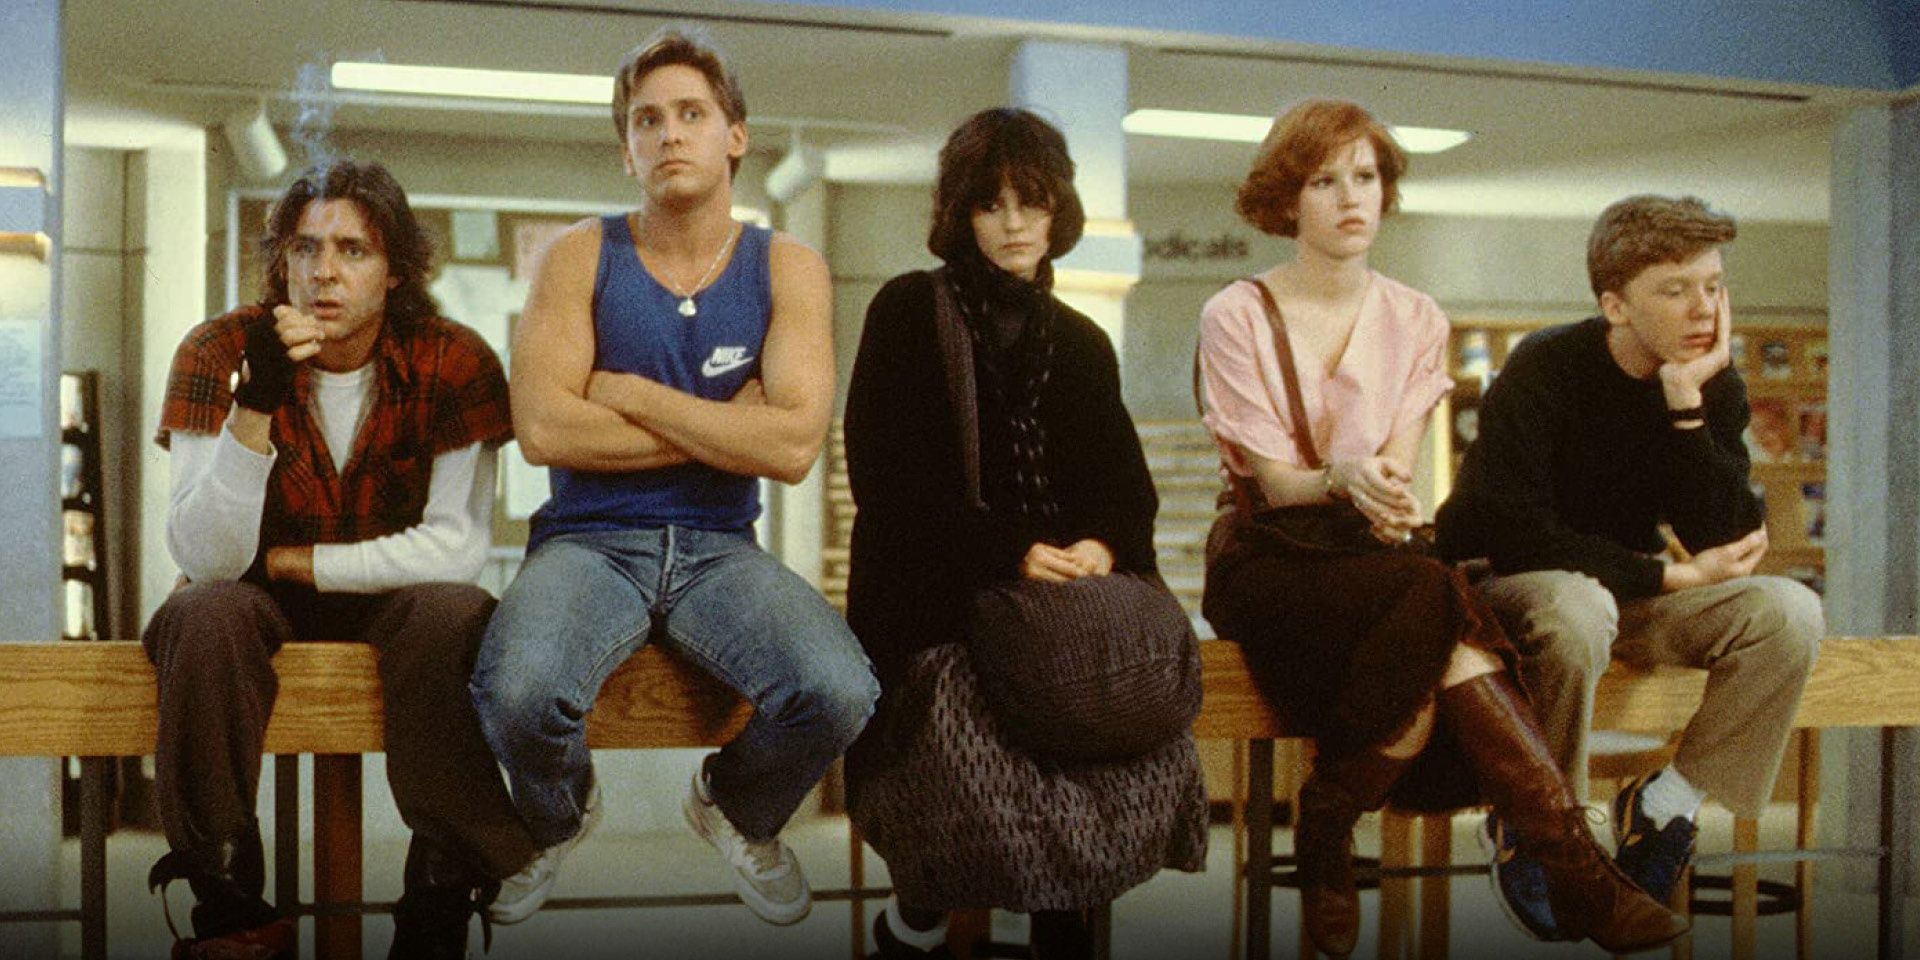 Breakfast Club Star Anthony Michael Hall Says The Brat Pack Never Existed